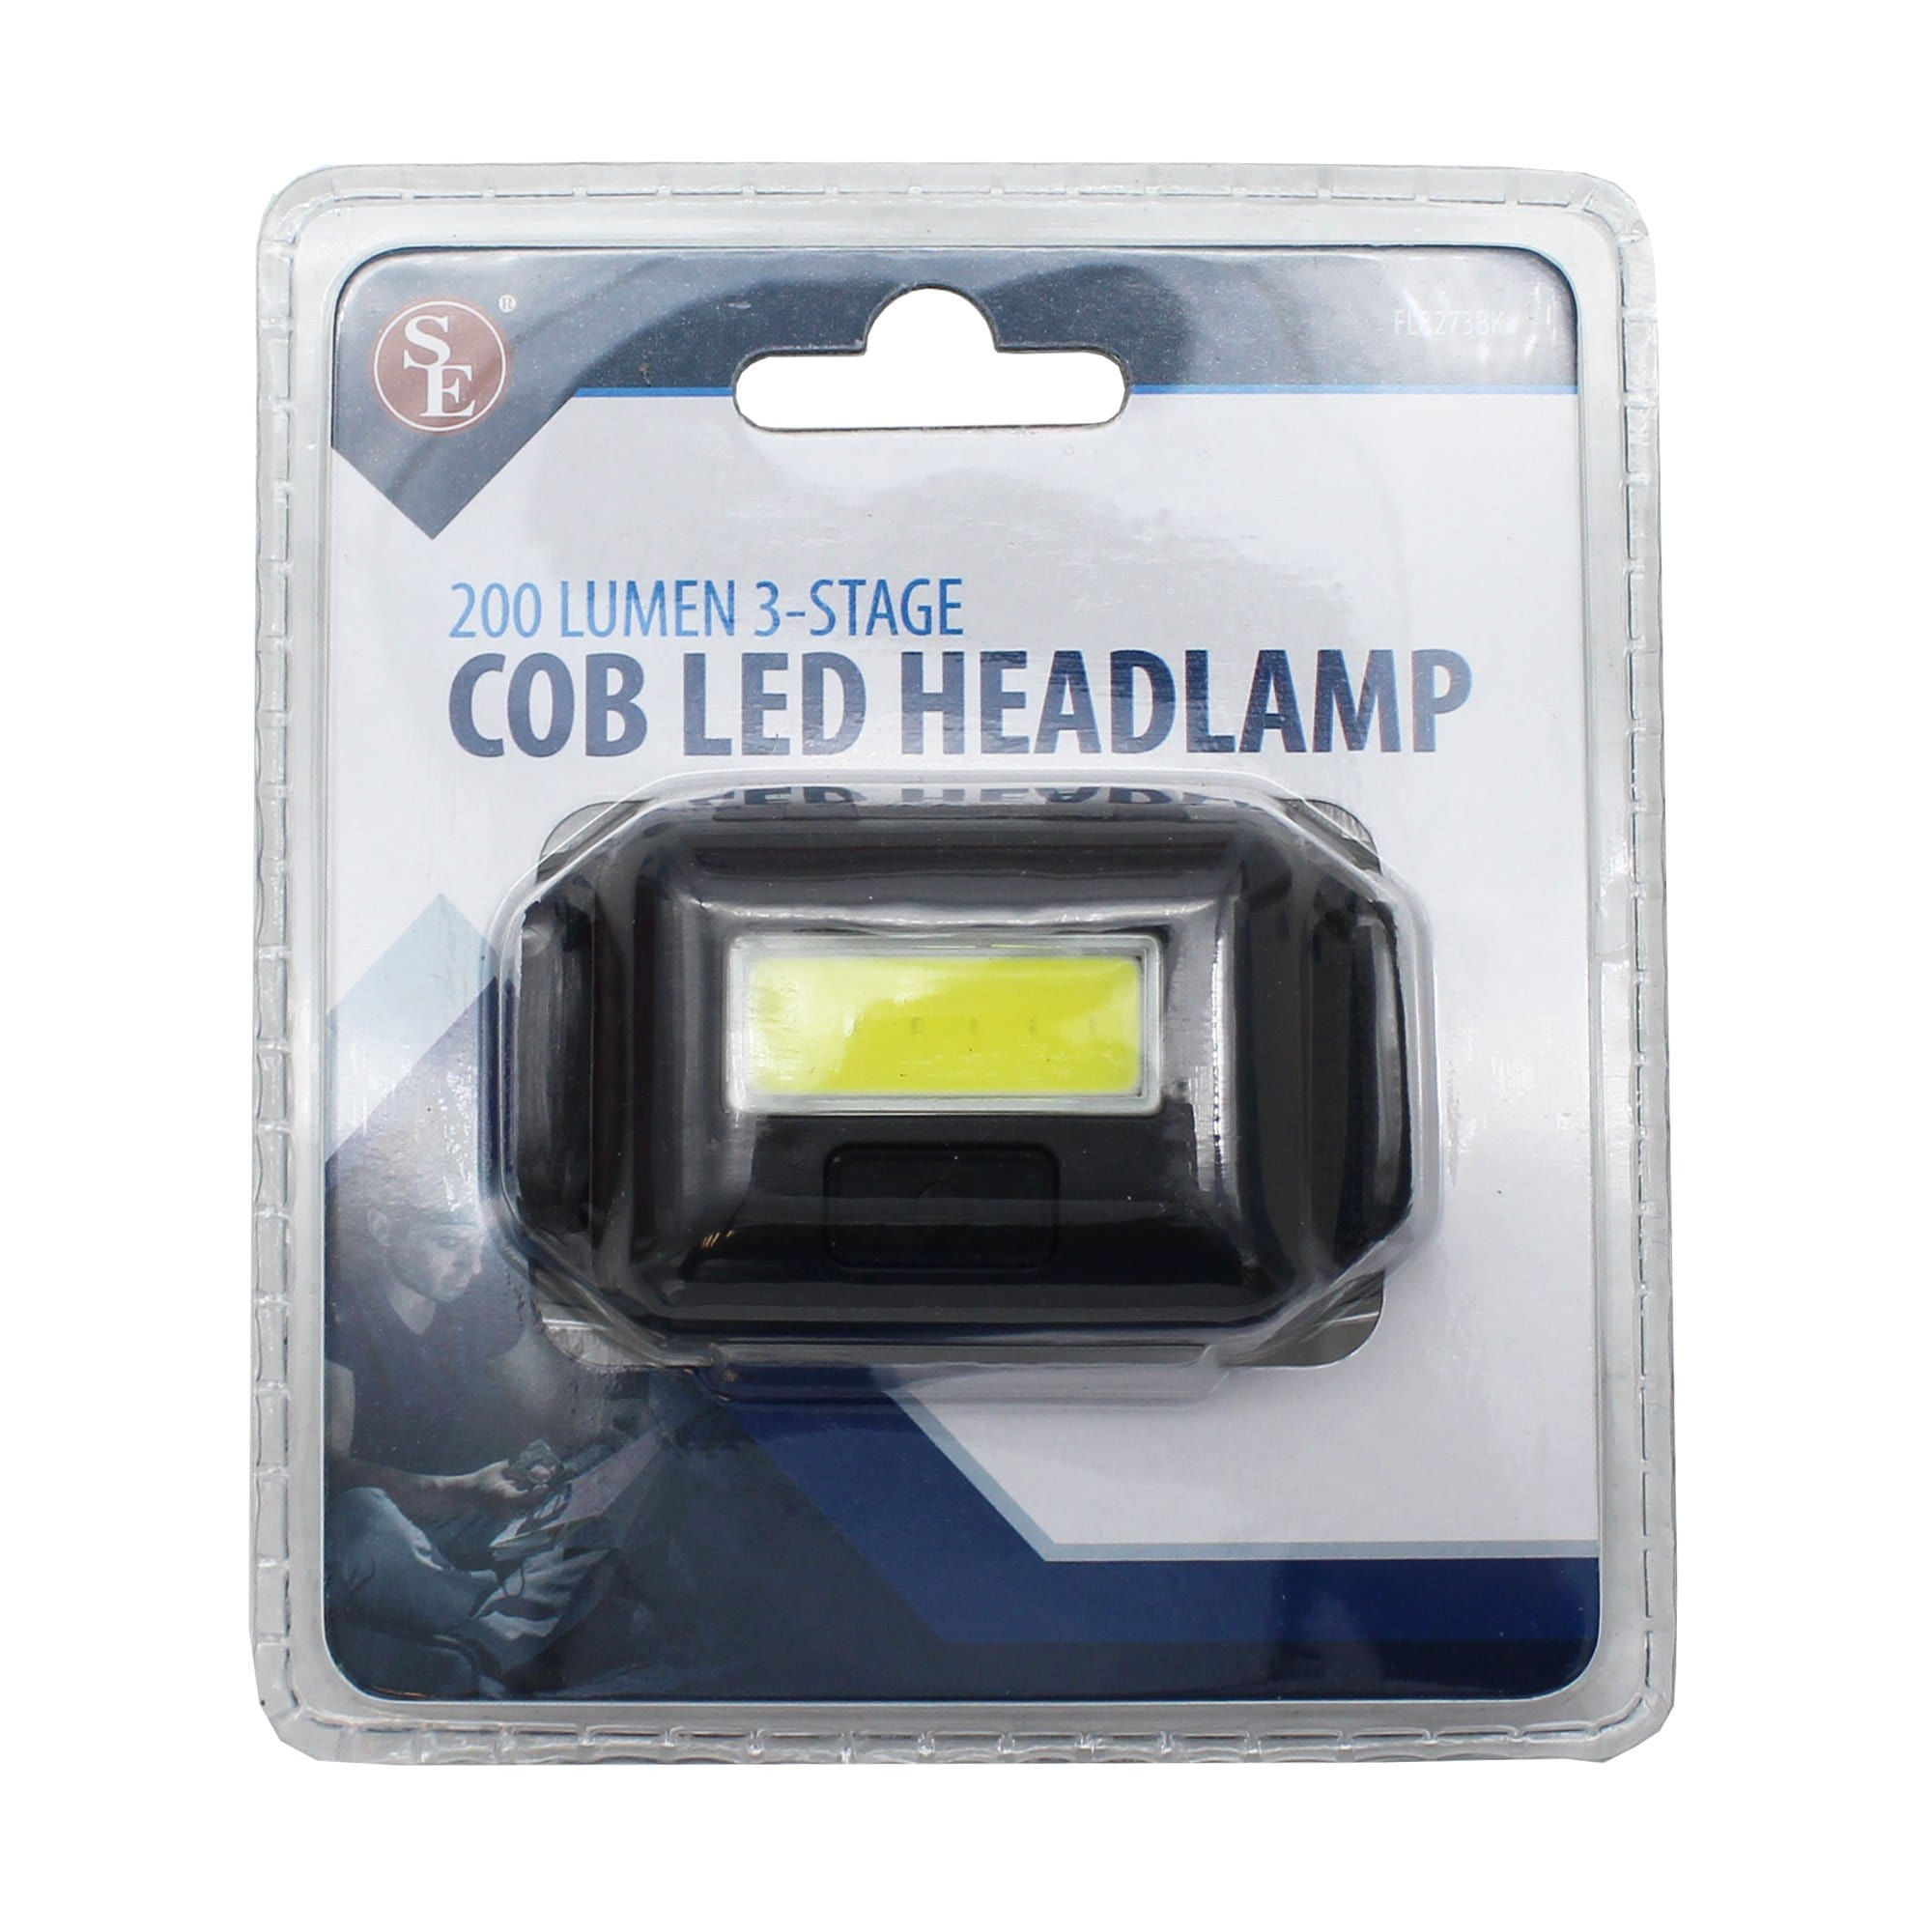 COB LED Headlamp - 200 Lumen / 3 Watt Energy Efficient front packaging